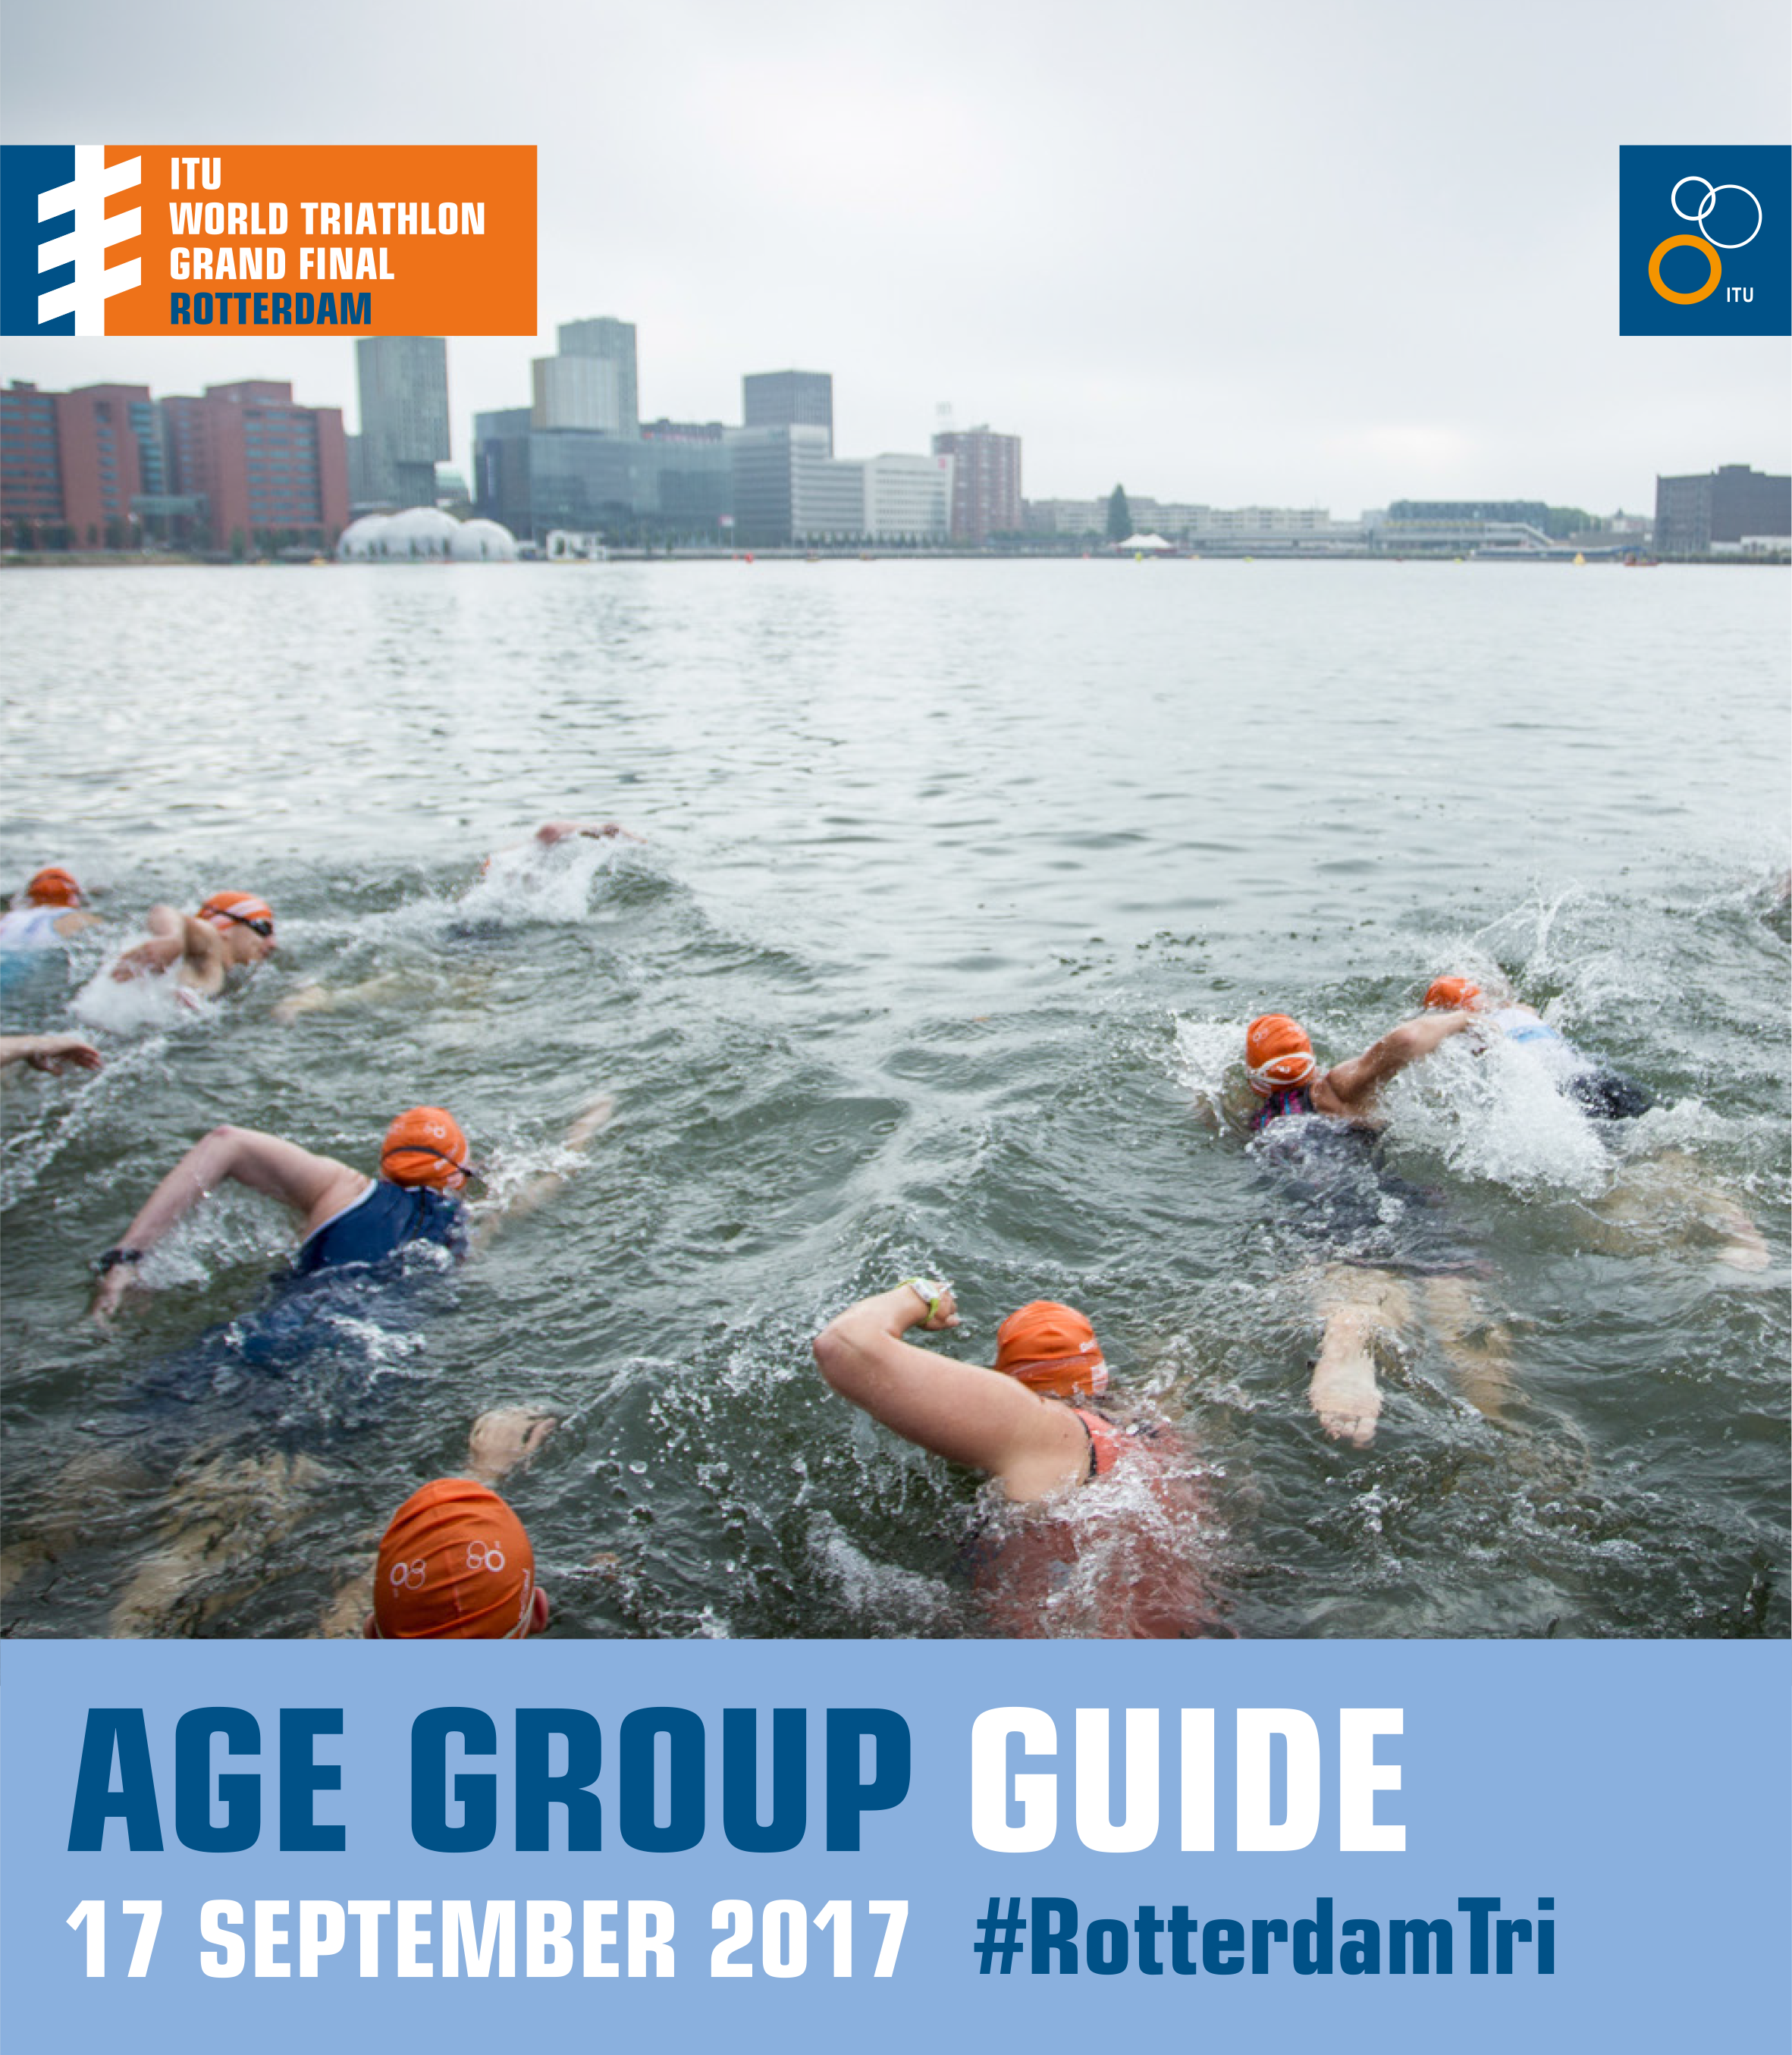 Age Group Guide Grand Final Rotterdam 2017